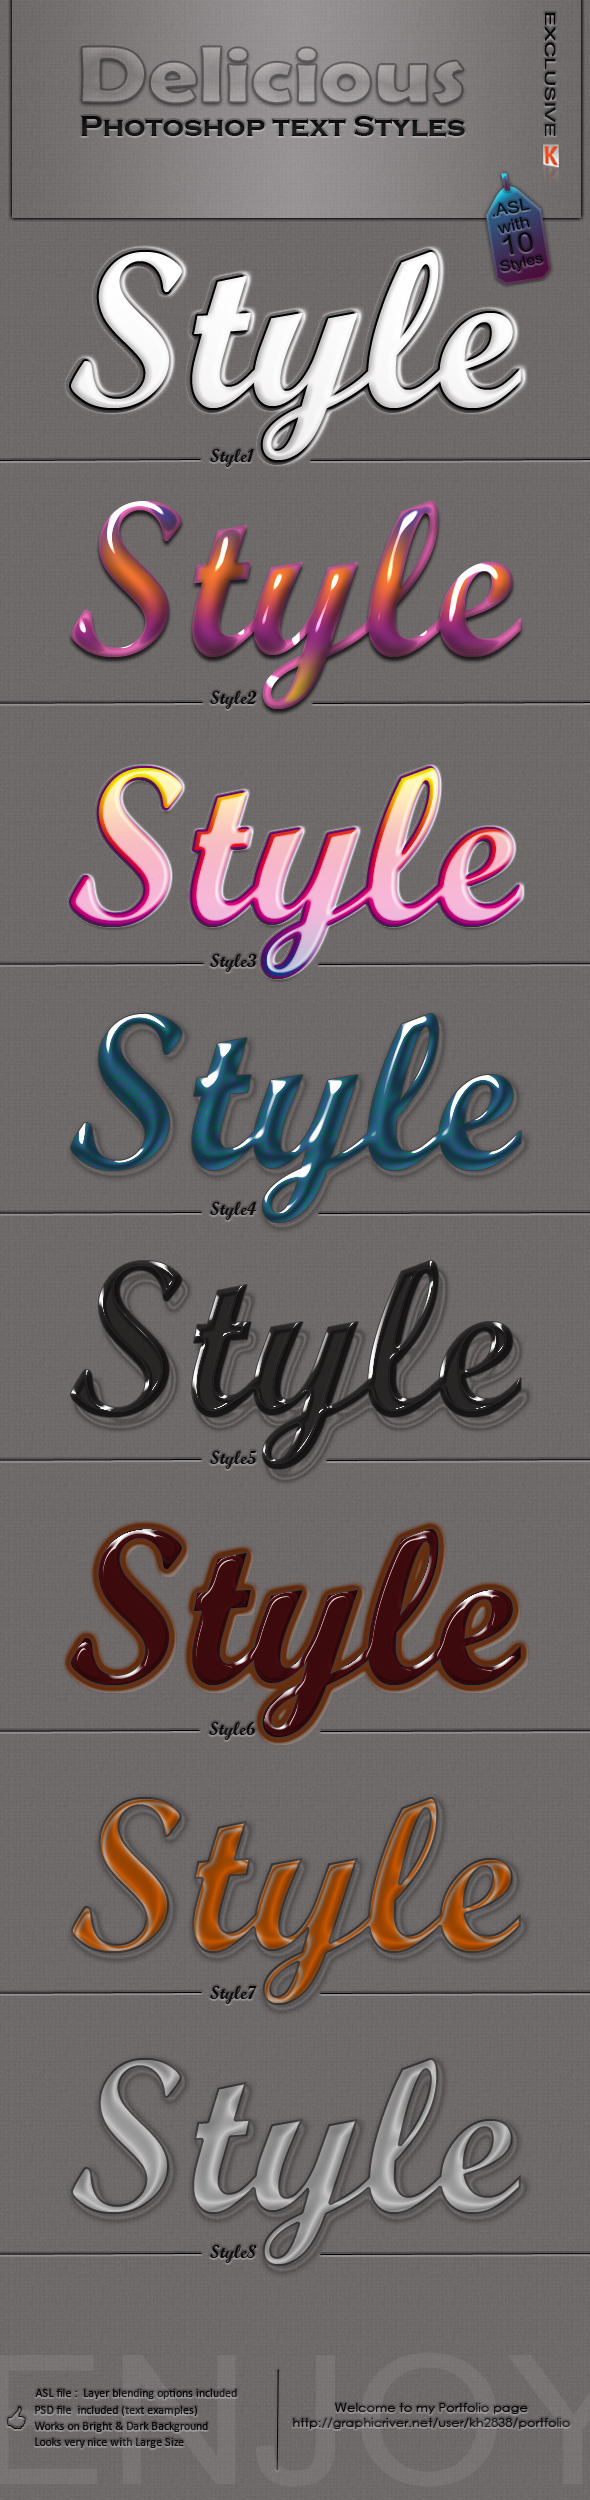 Delicious Photoshop Styles - Text Effects Styles